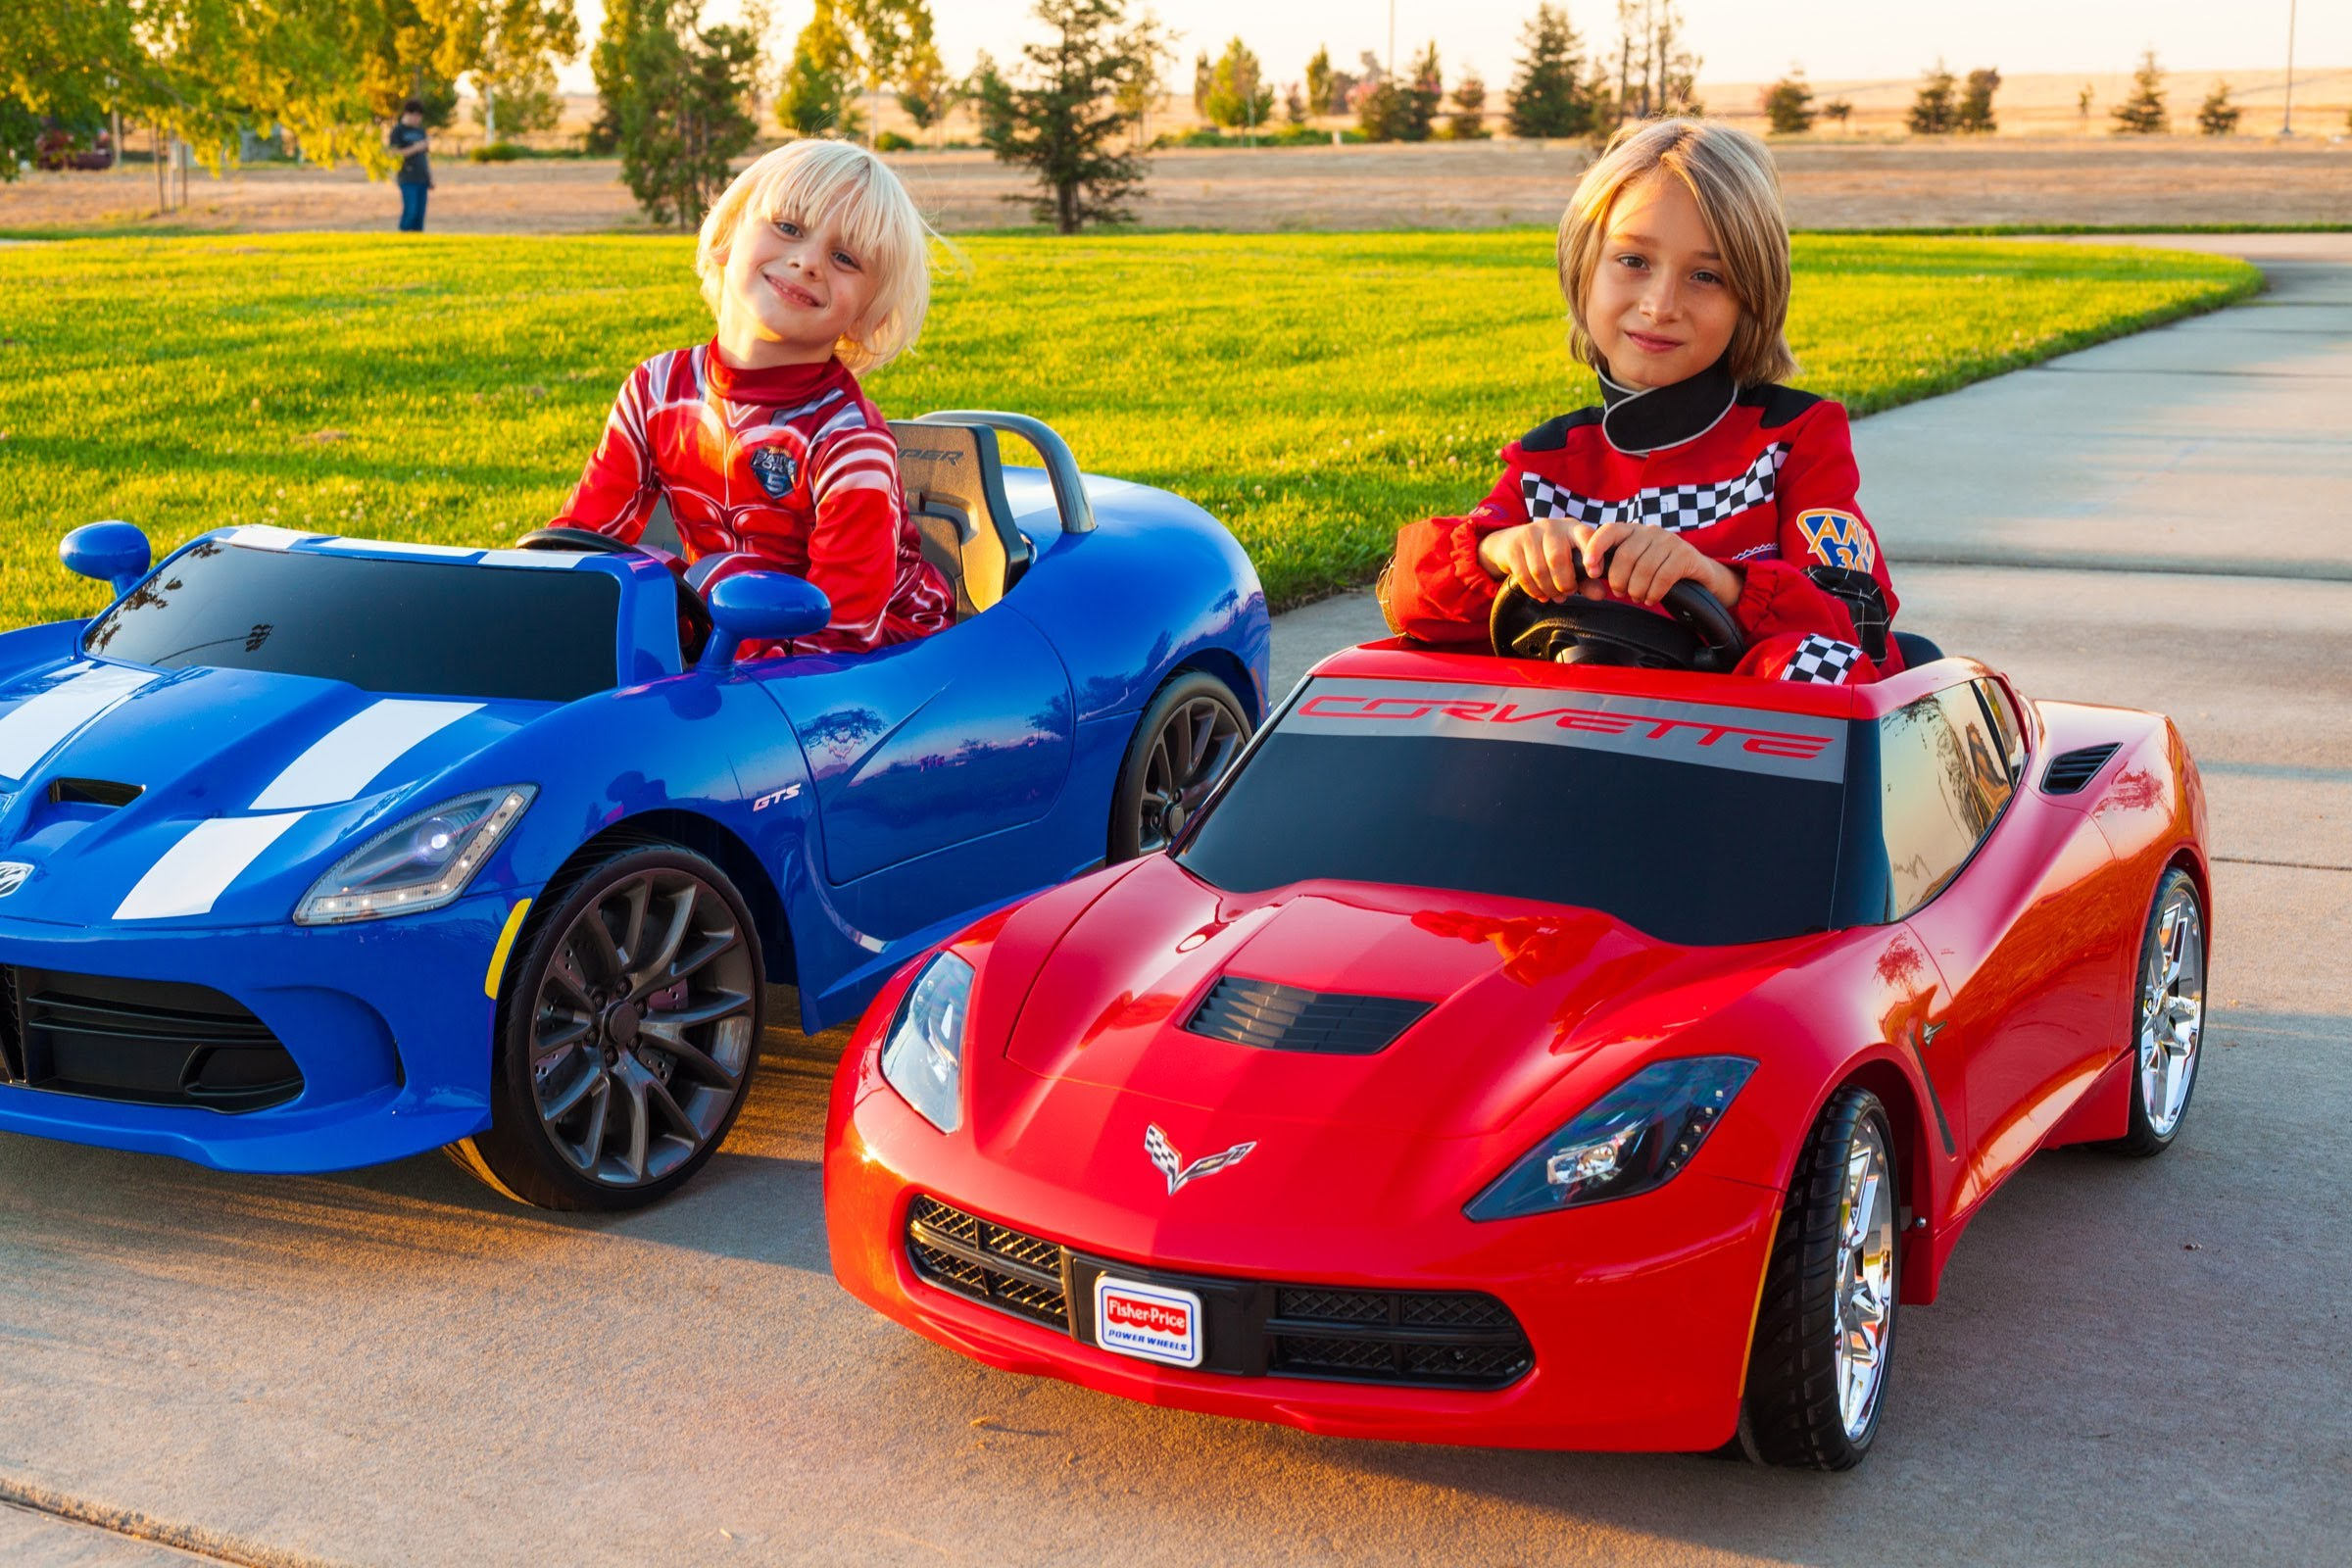 pics-of-young-kids-in-cars-little-asian-ethnc-girls